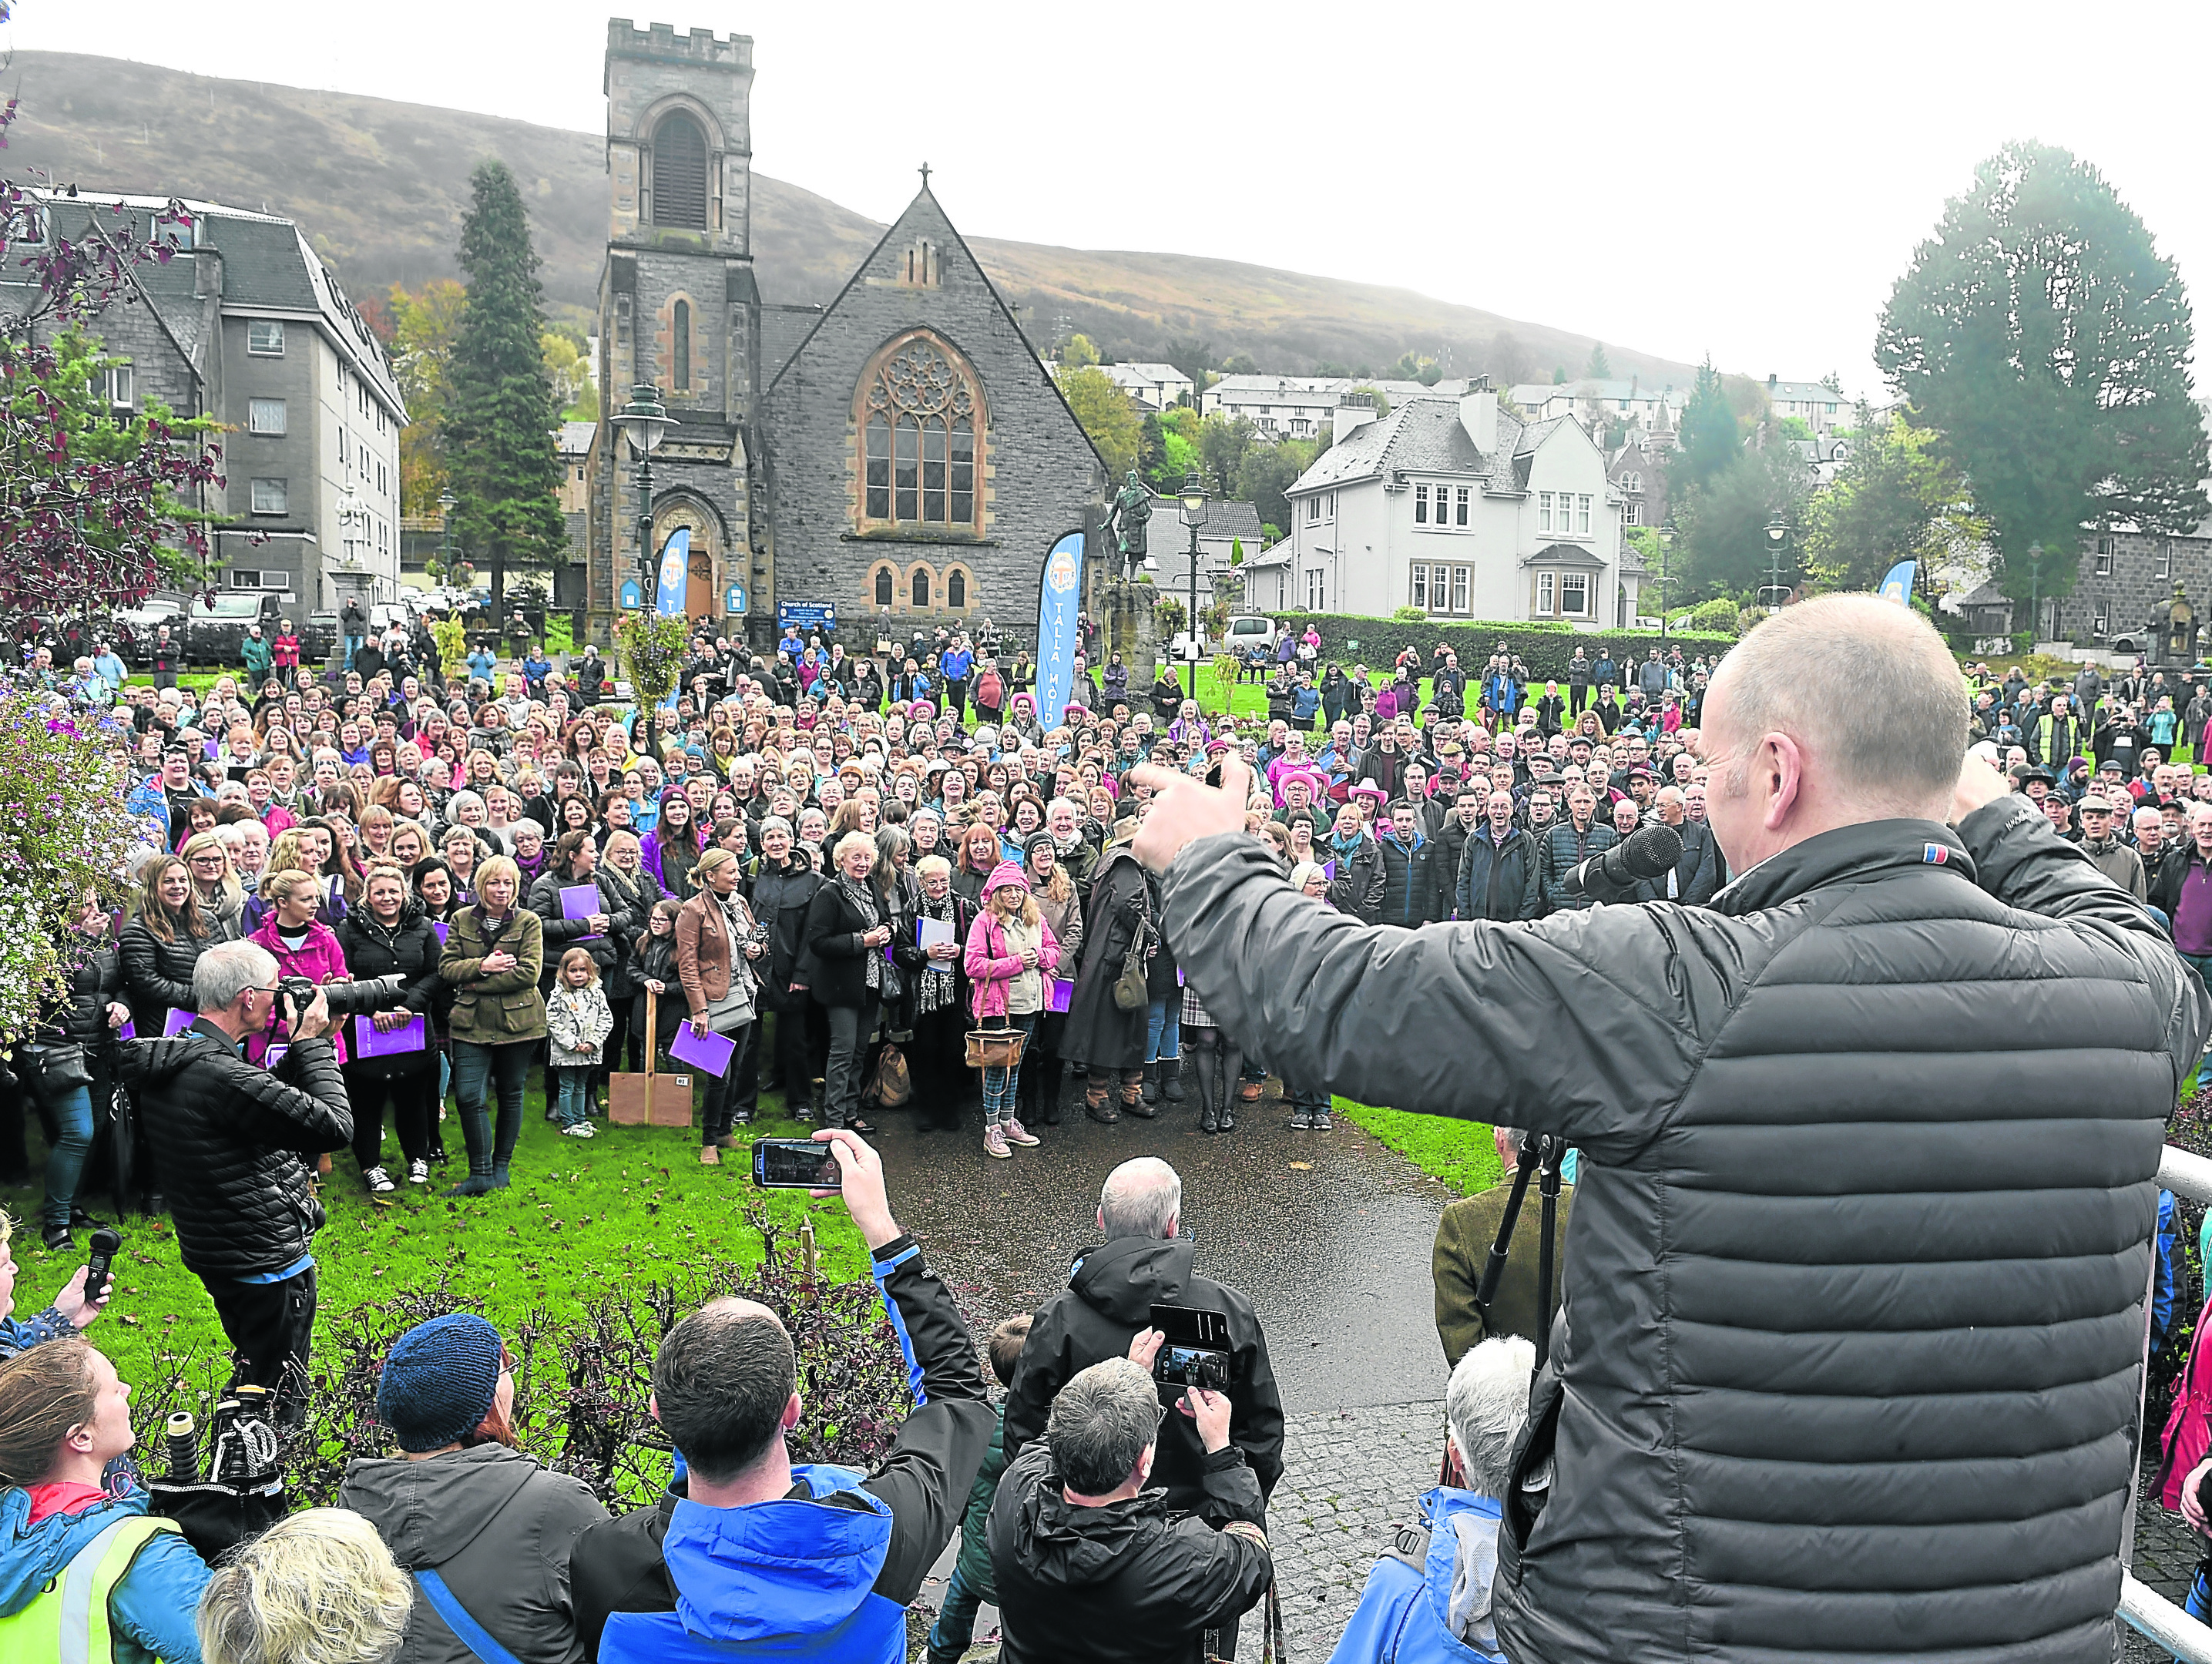 The Massed Choirs are led through Fort William by the Lochaber Pipe Band before performing on The Parade in the centre of the town before making their way home following the Royal National Mod.